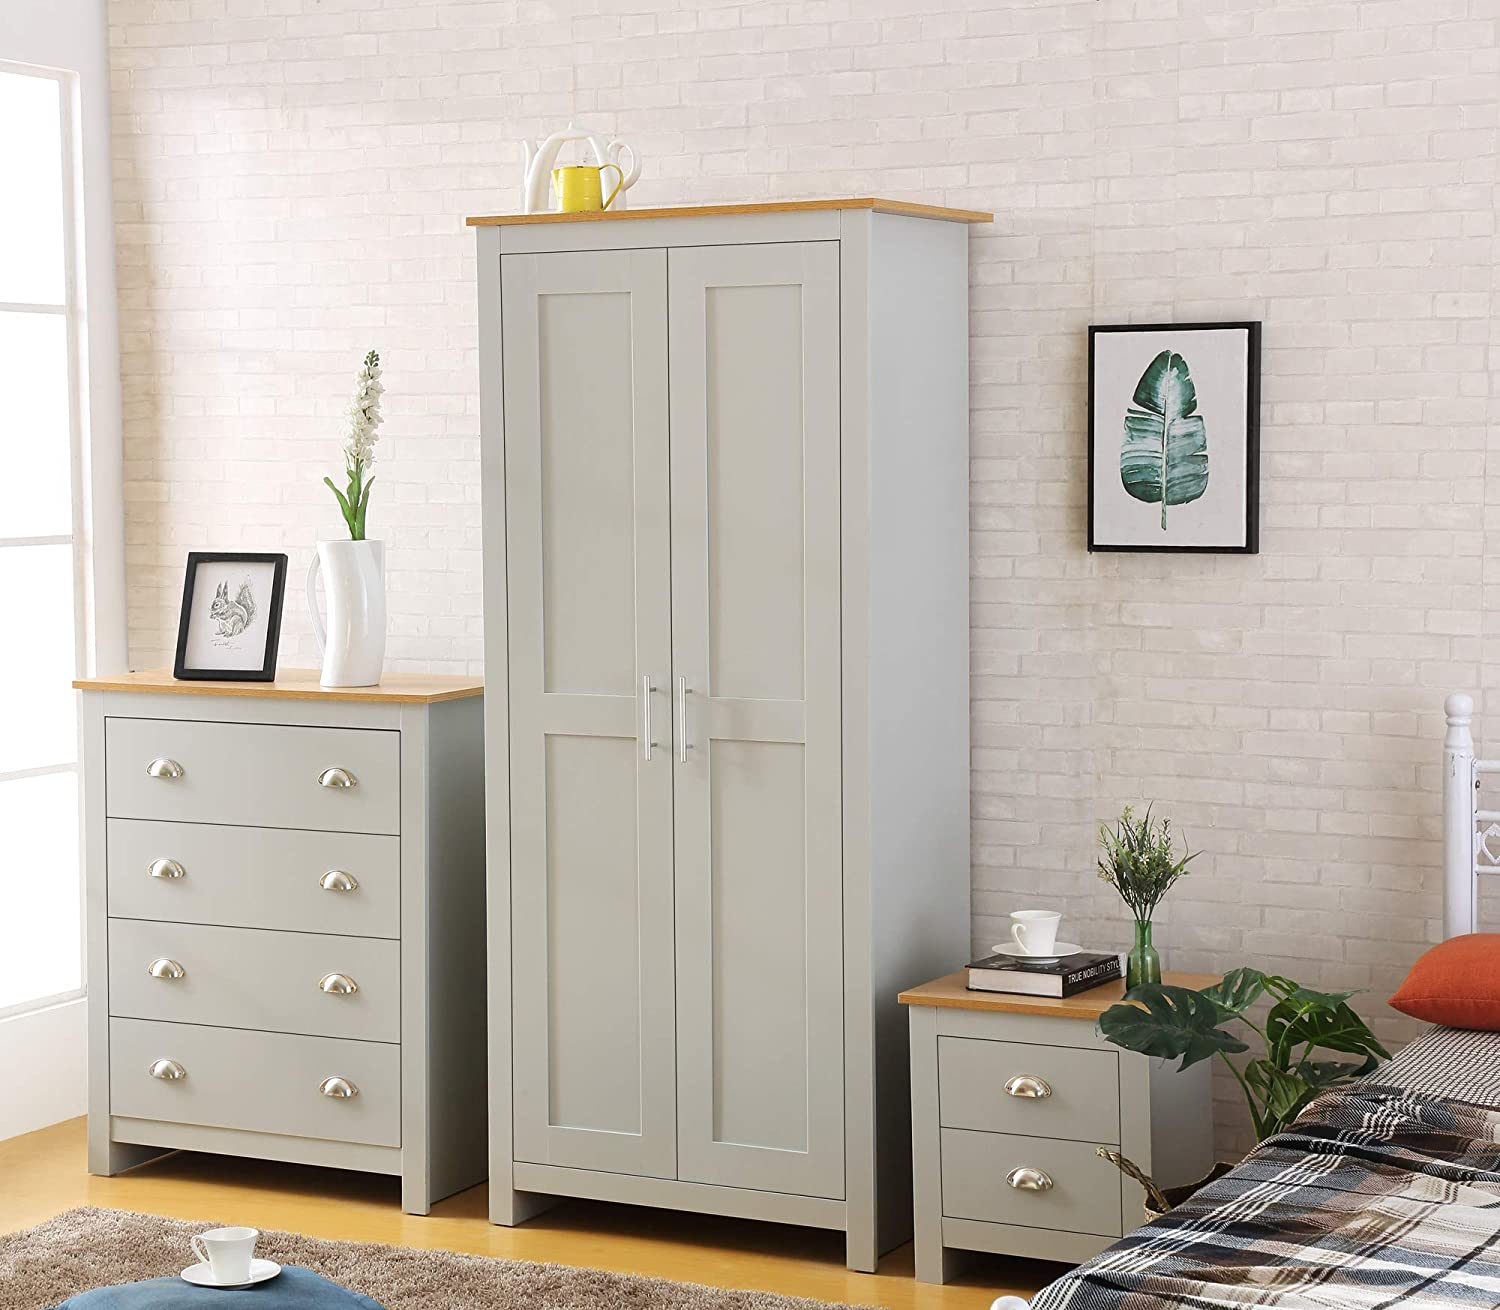 Harmin Country Supreme Grey With Oak 3 Piece Bedroom Furniture Set Soft Close Wardrobe Chest Bedside Amazon Co Uk Kitchen Home